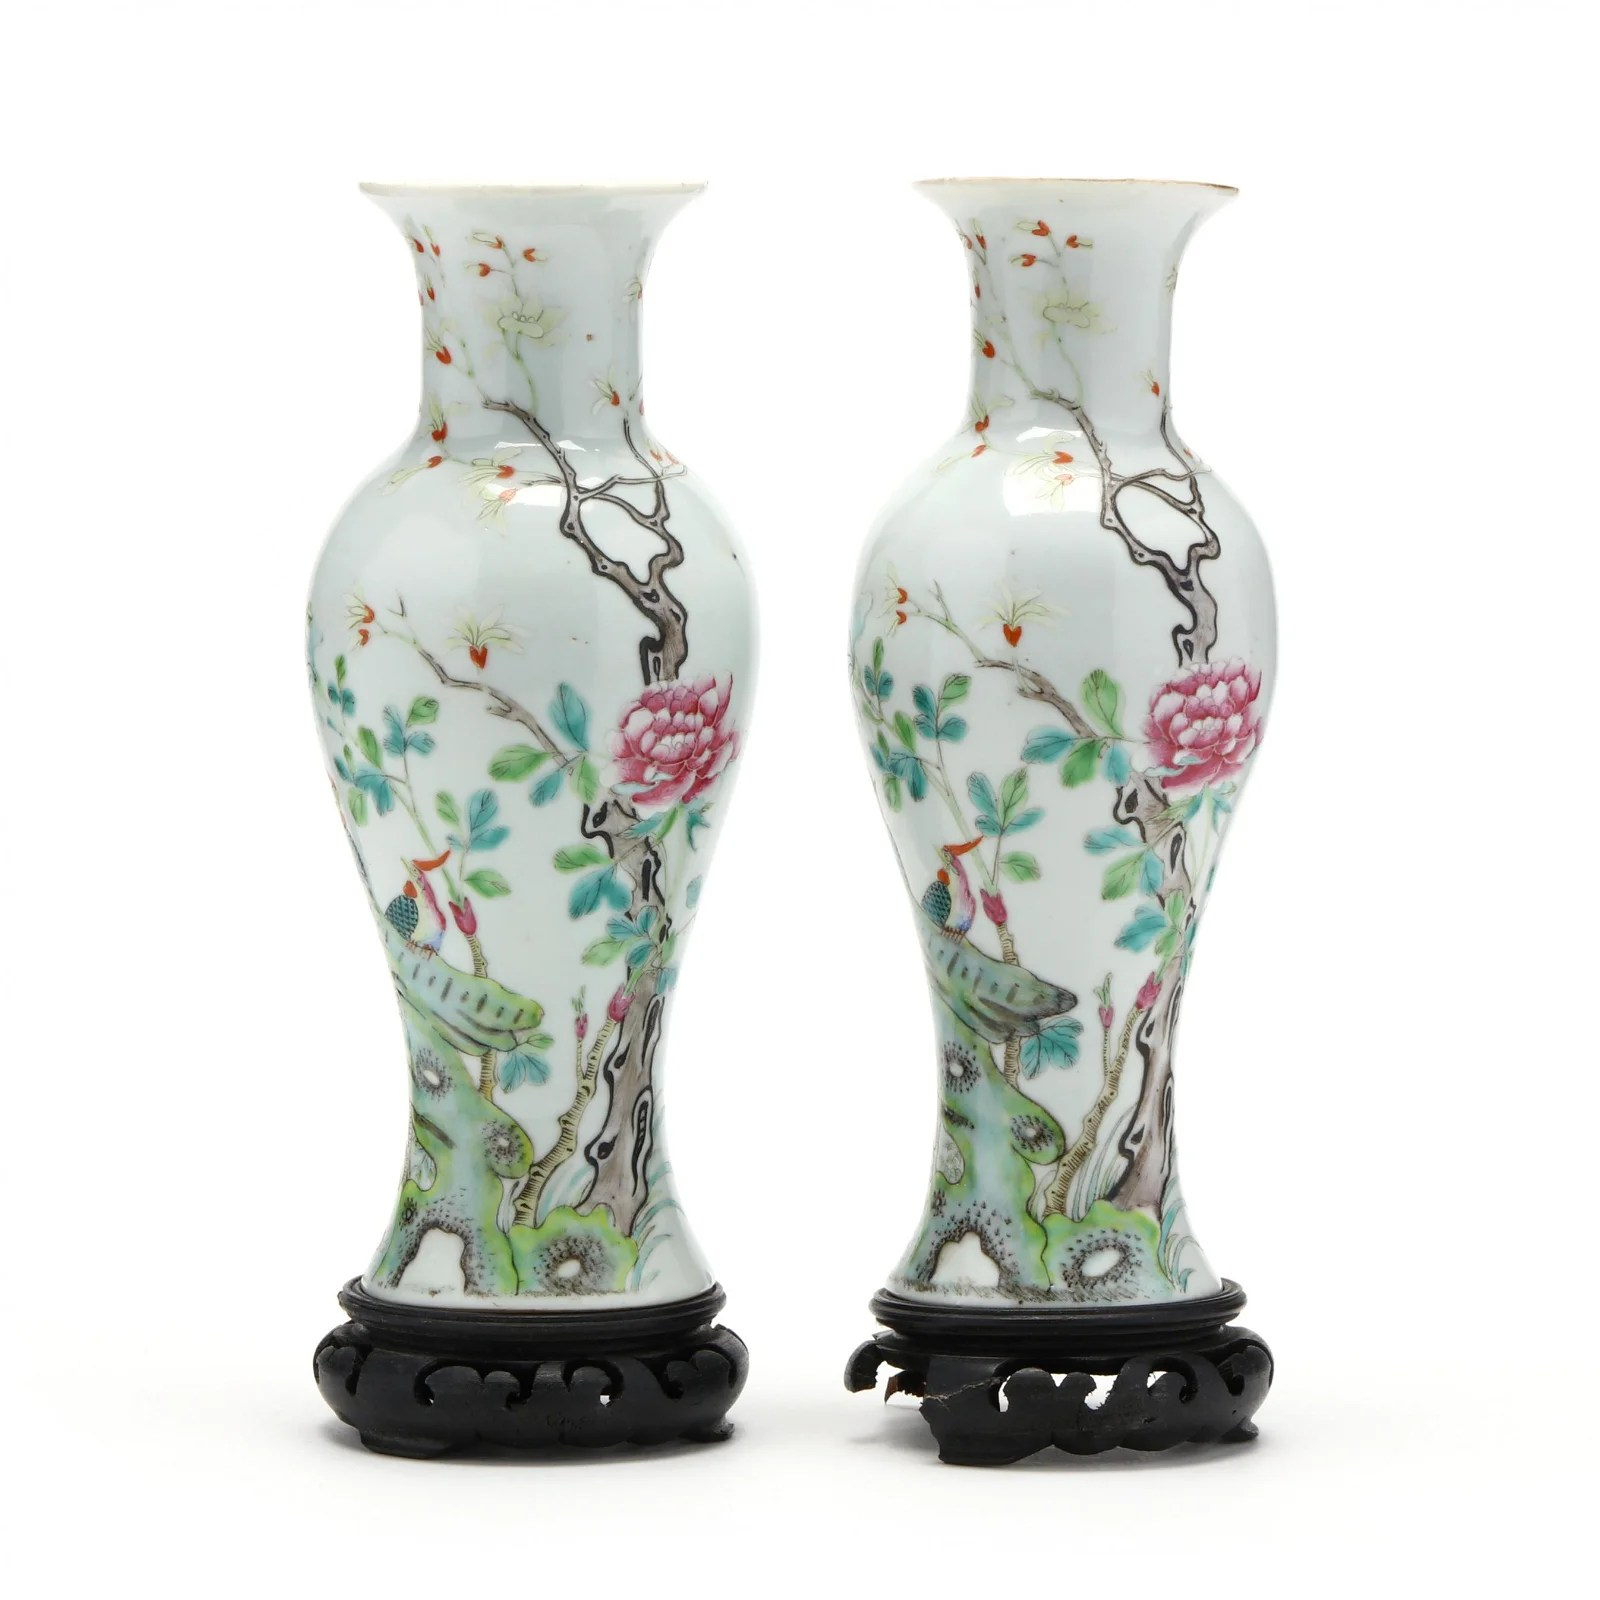 A Matched Pair of Chinese Porcelain Mantel Vases